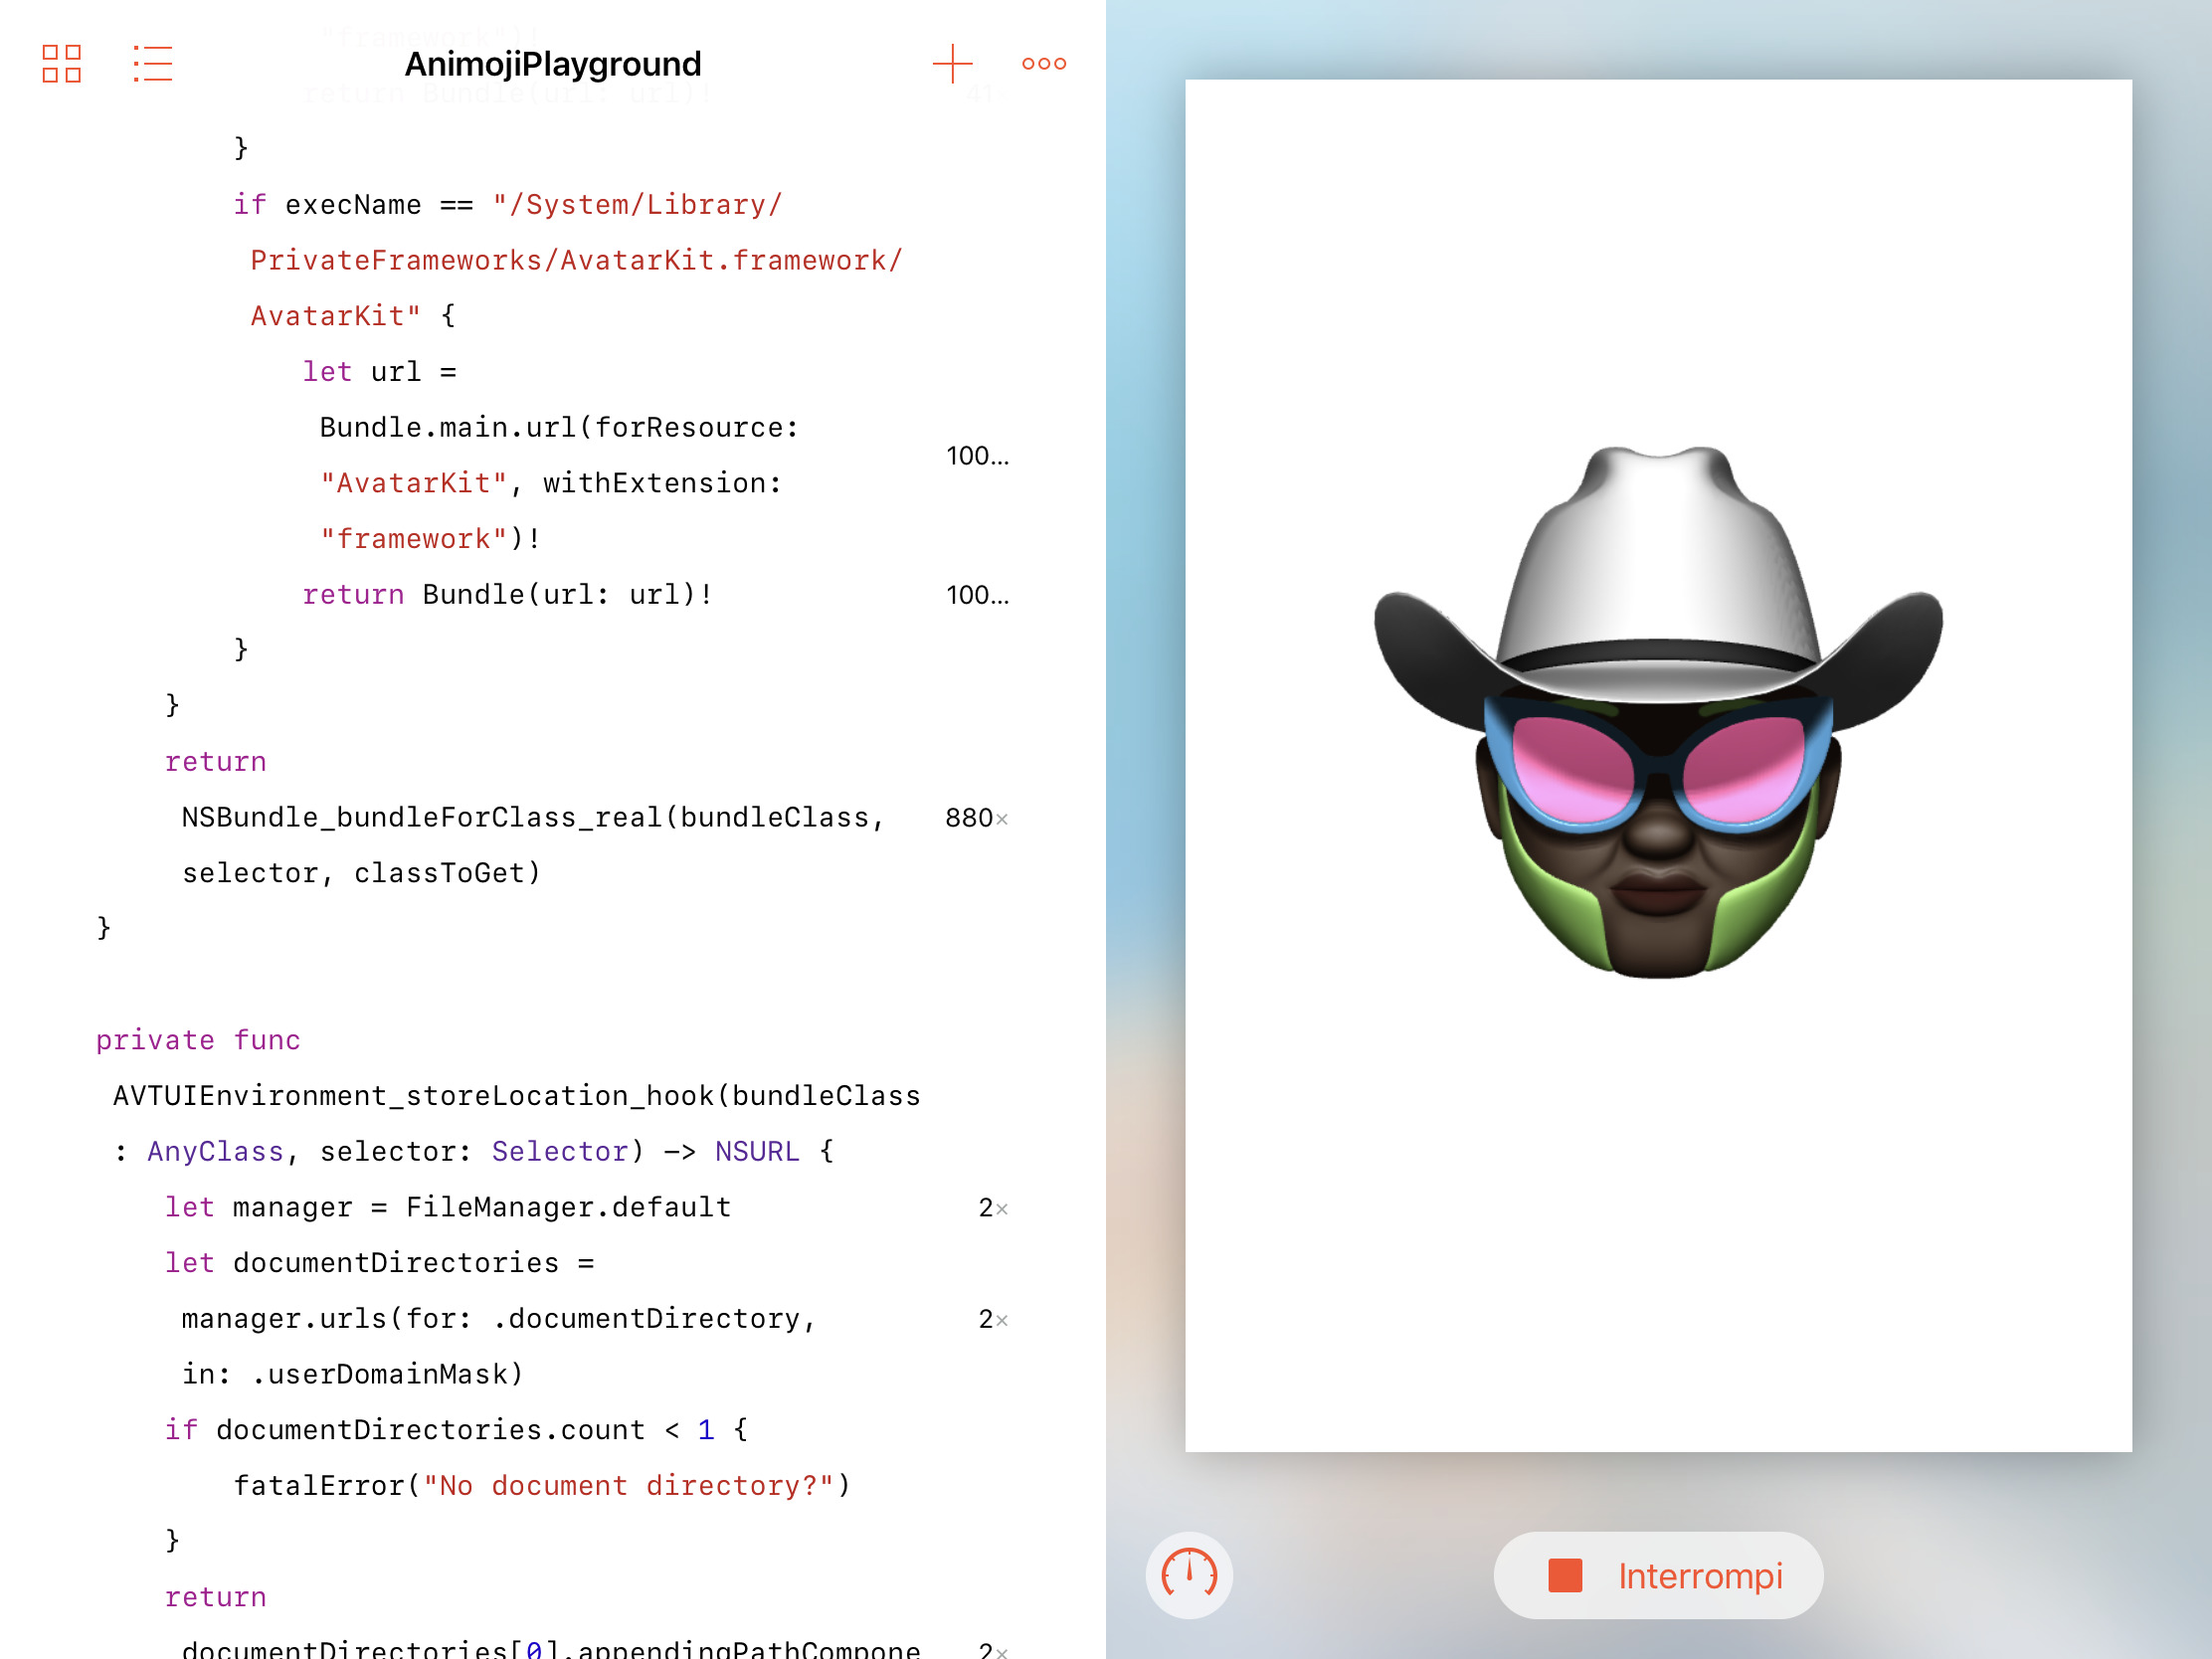 screenshot of the Memoji editor in Swift Playgrounds